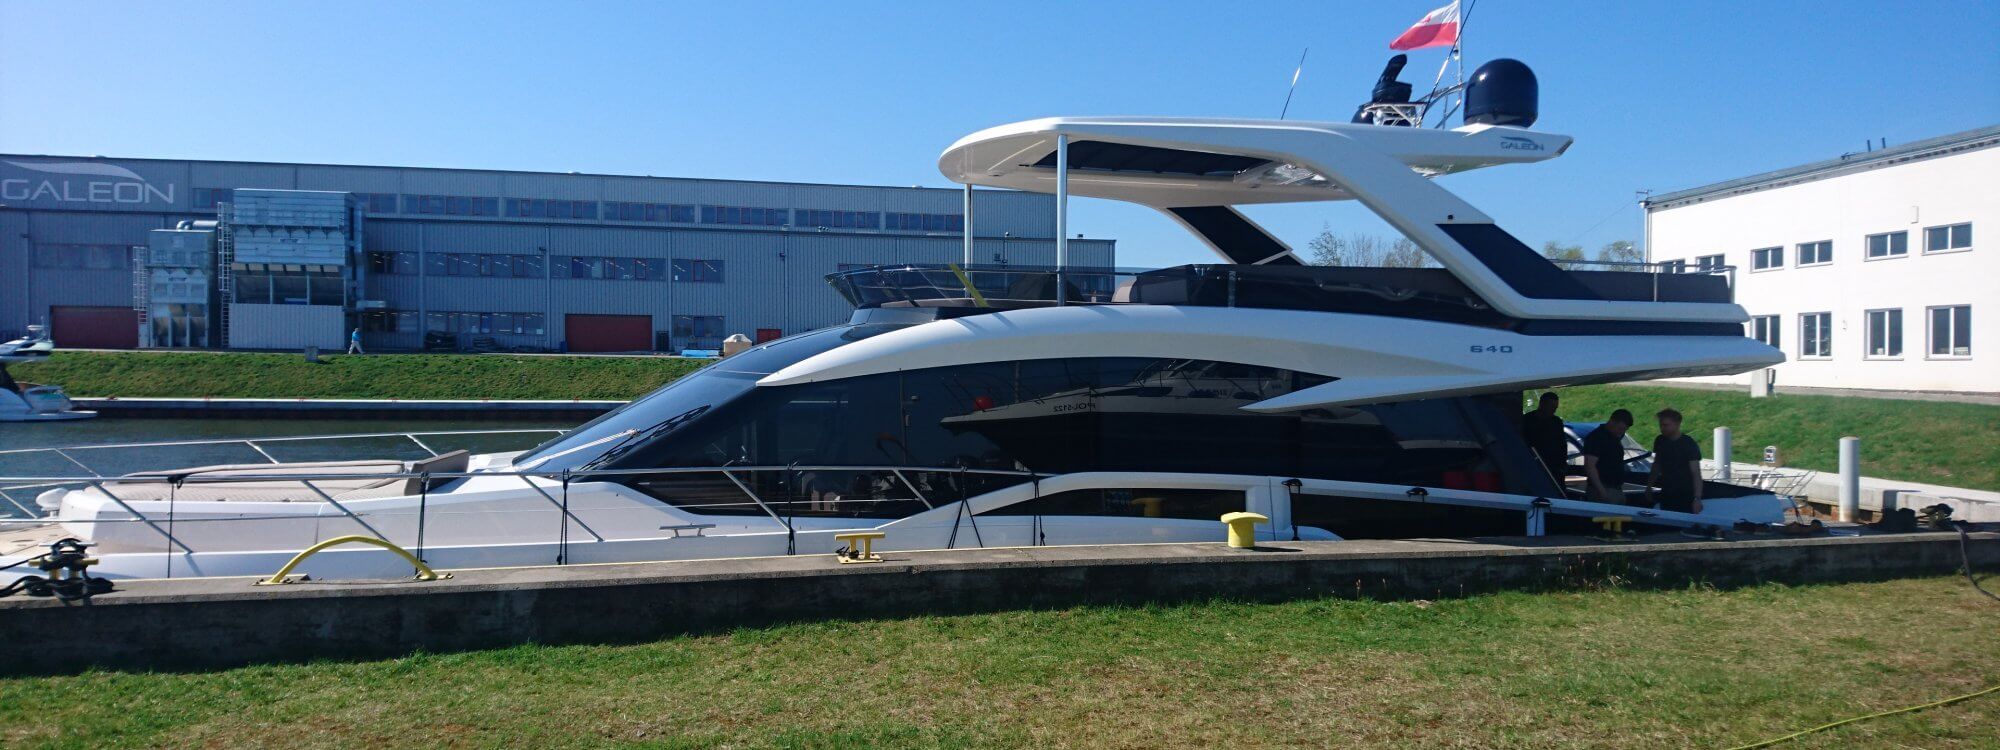 Crestapol<sup>®</sup> 1261 resin delivers exceptional strength &#038; weight saving to the Galeon 640 FLY yacht